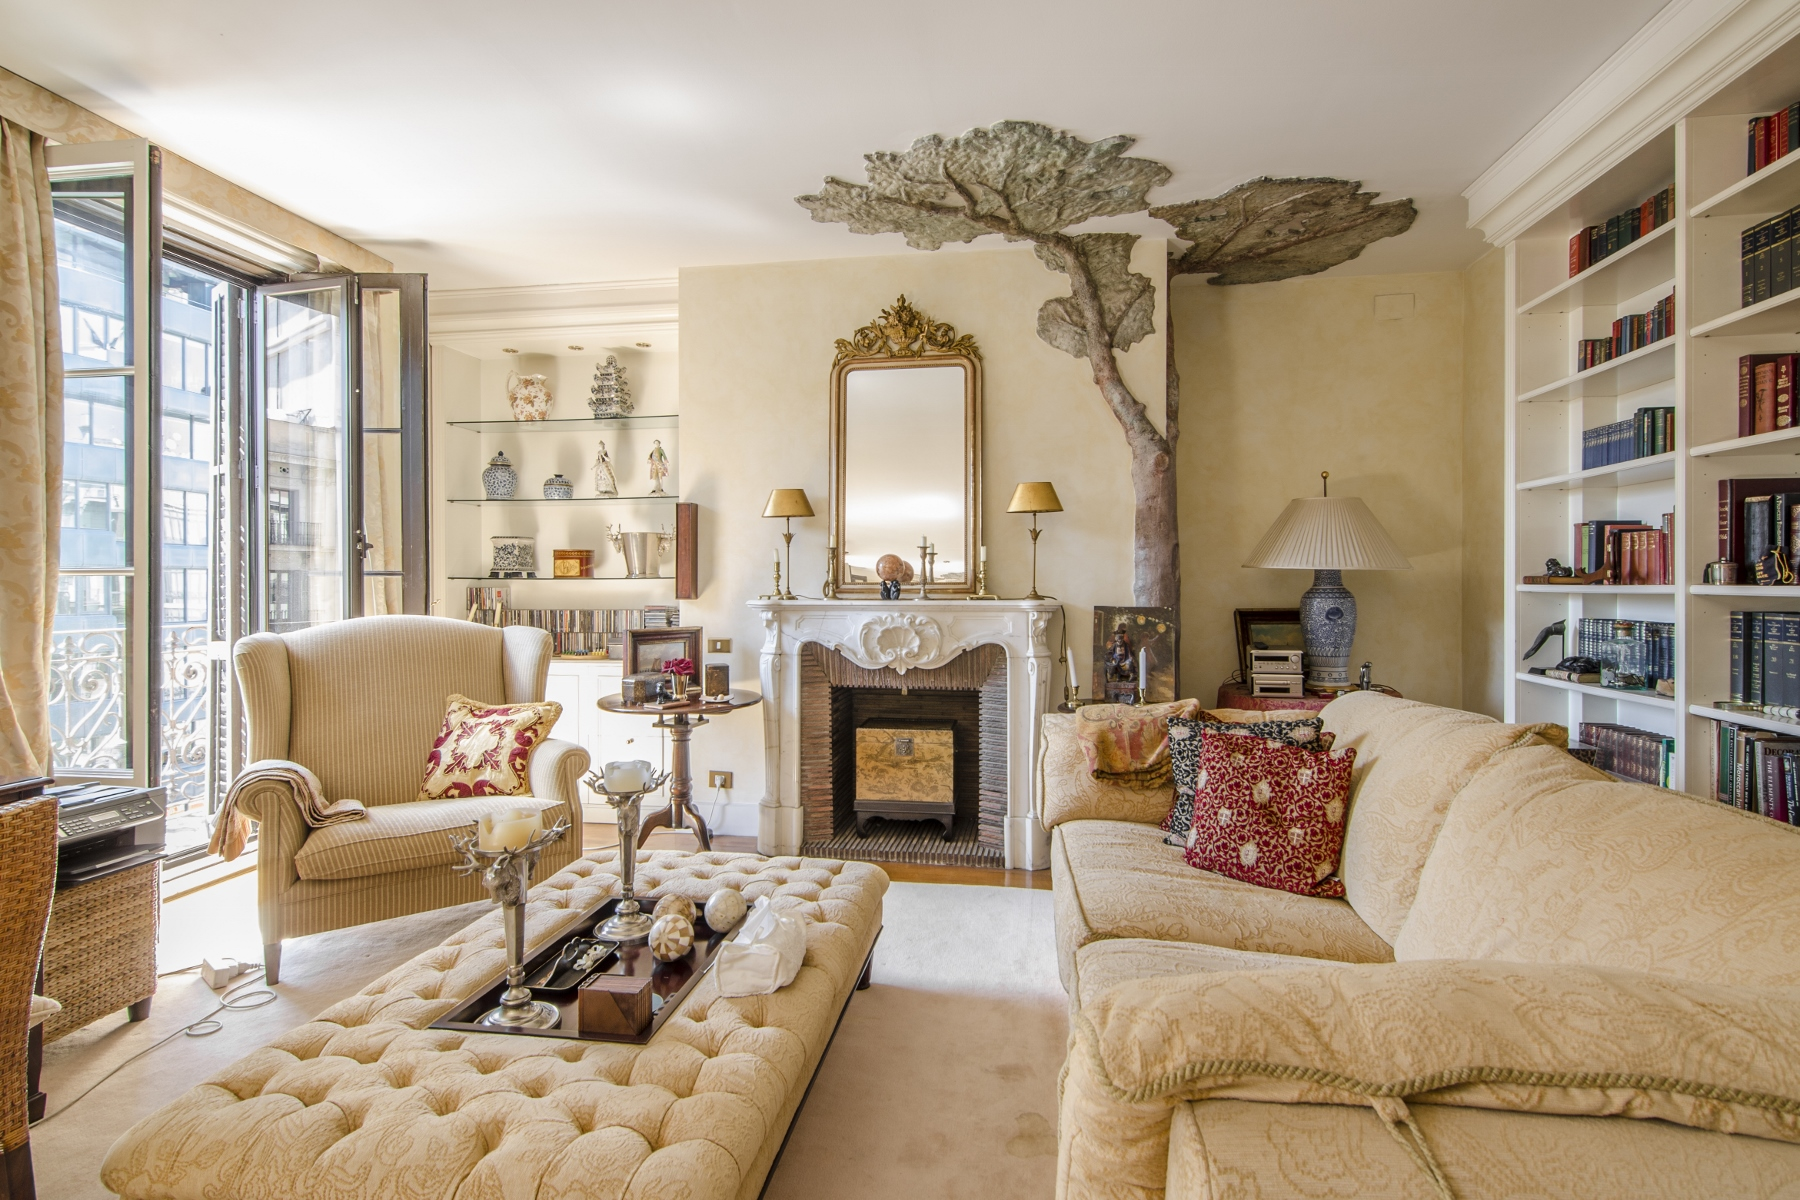 Apartment for Sale at Elegant and Spacious Flat in a Regal Building in Right Eixample Eixample, Barcelona City, Barcelona, 08007 Spain